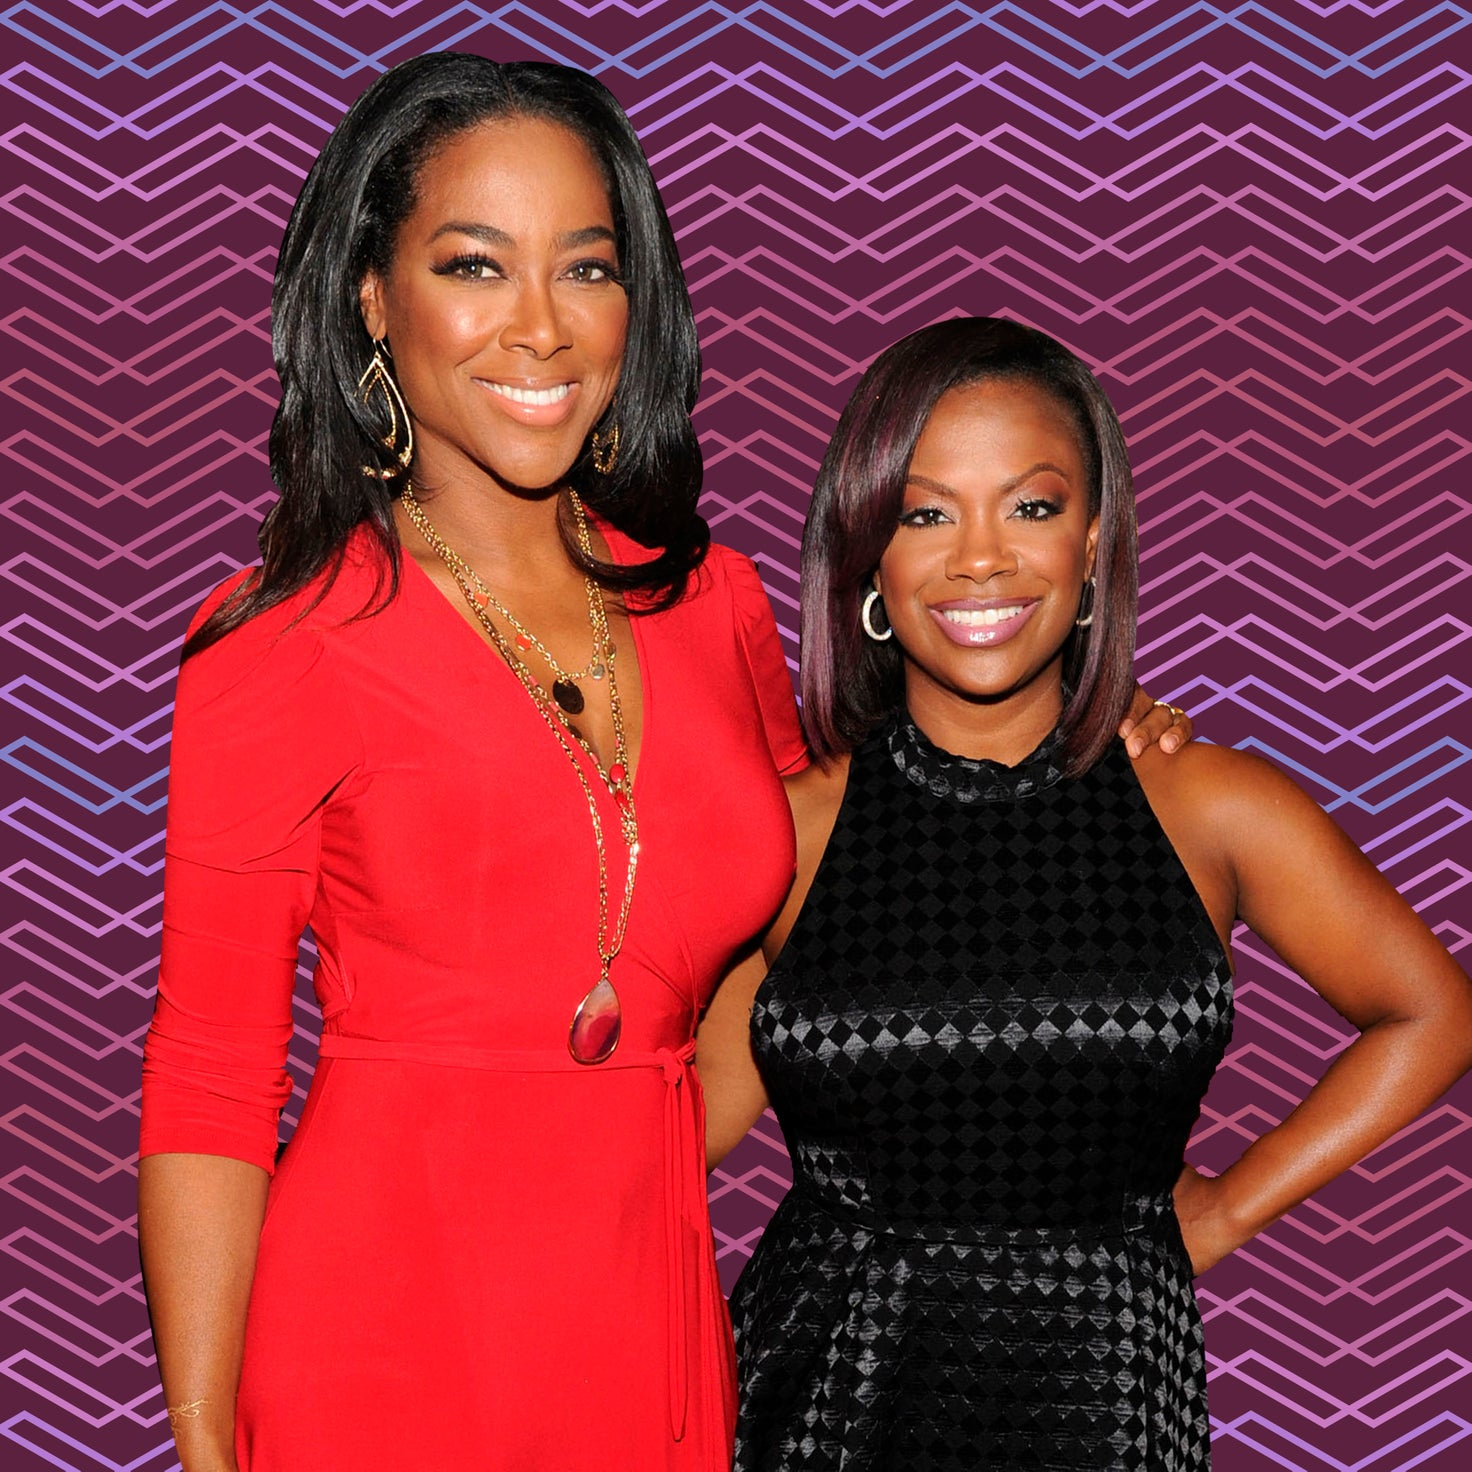 kandi-burruss-hangs-out-with-kenya-moore-check-out-the-gorgeous-ladies